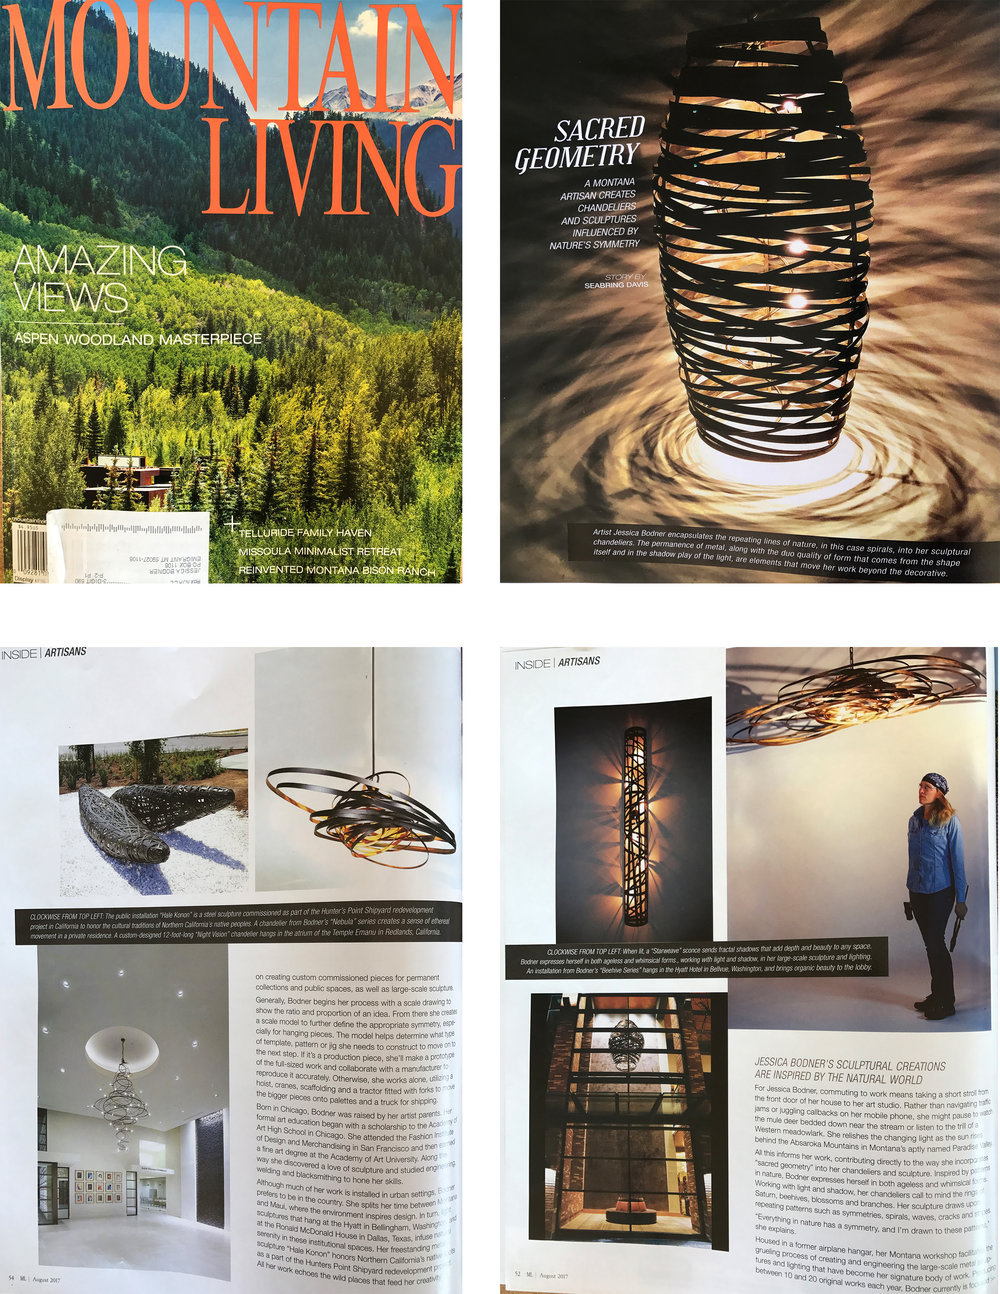 "Mountain Living Magazine, August 2017,""Inside Artisans"" By: Seabring Davis"